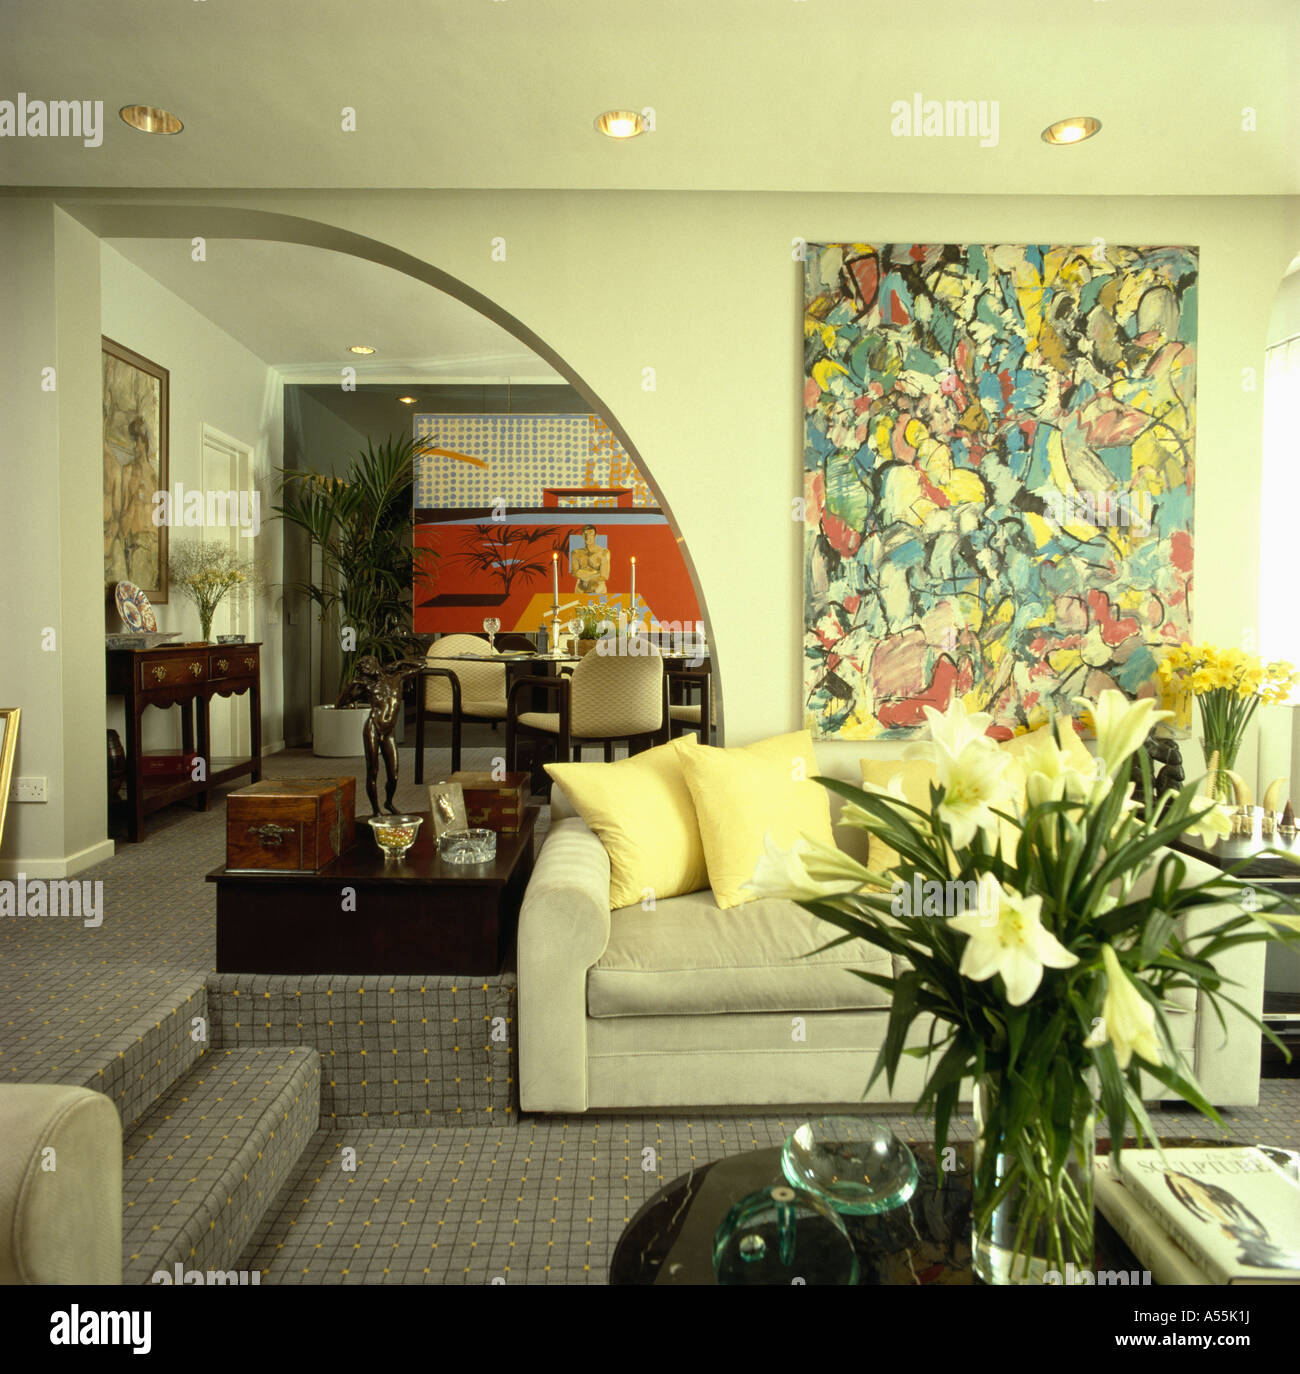 Large Paintings For Living Room Large Abstract Painting On Wall Above Pale Gray Sofa Beside Arched